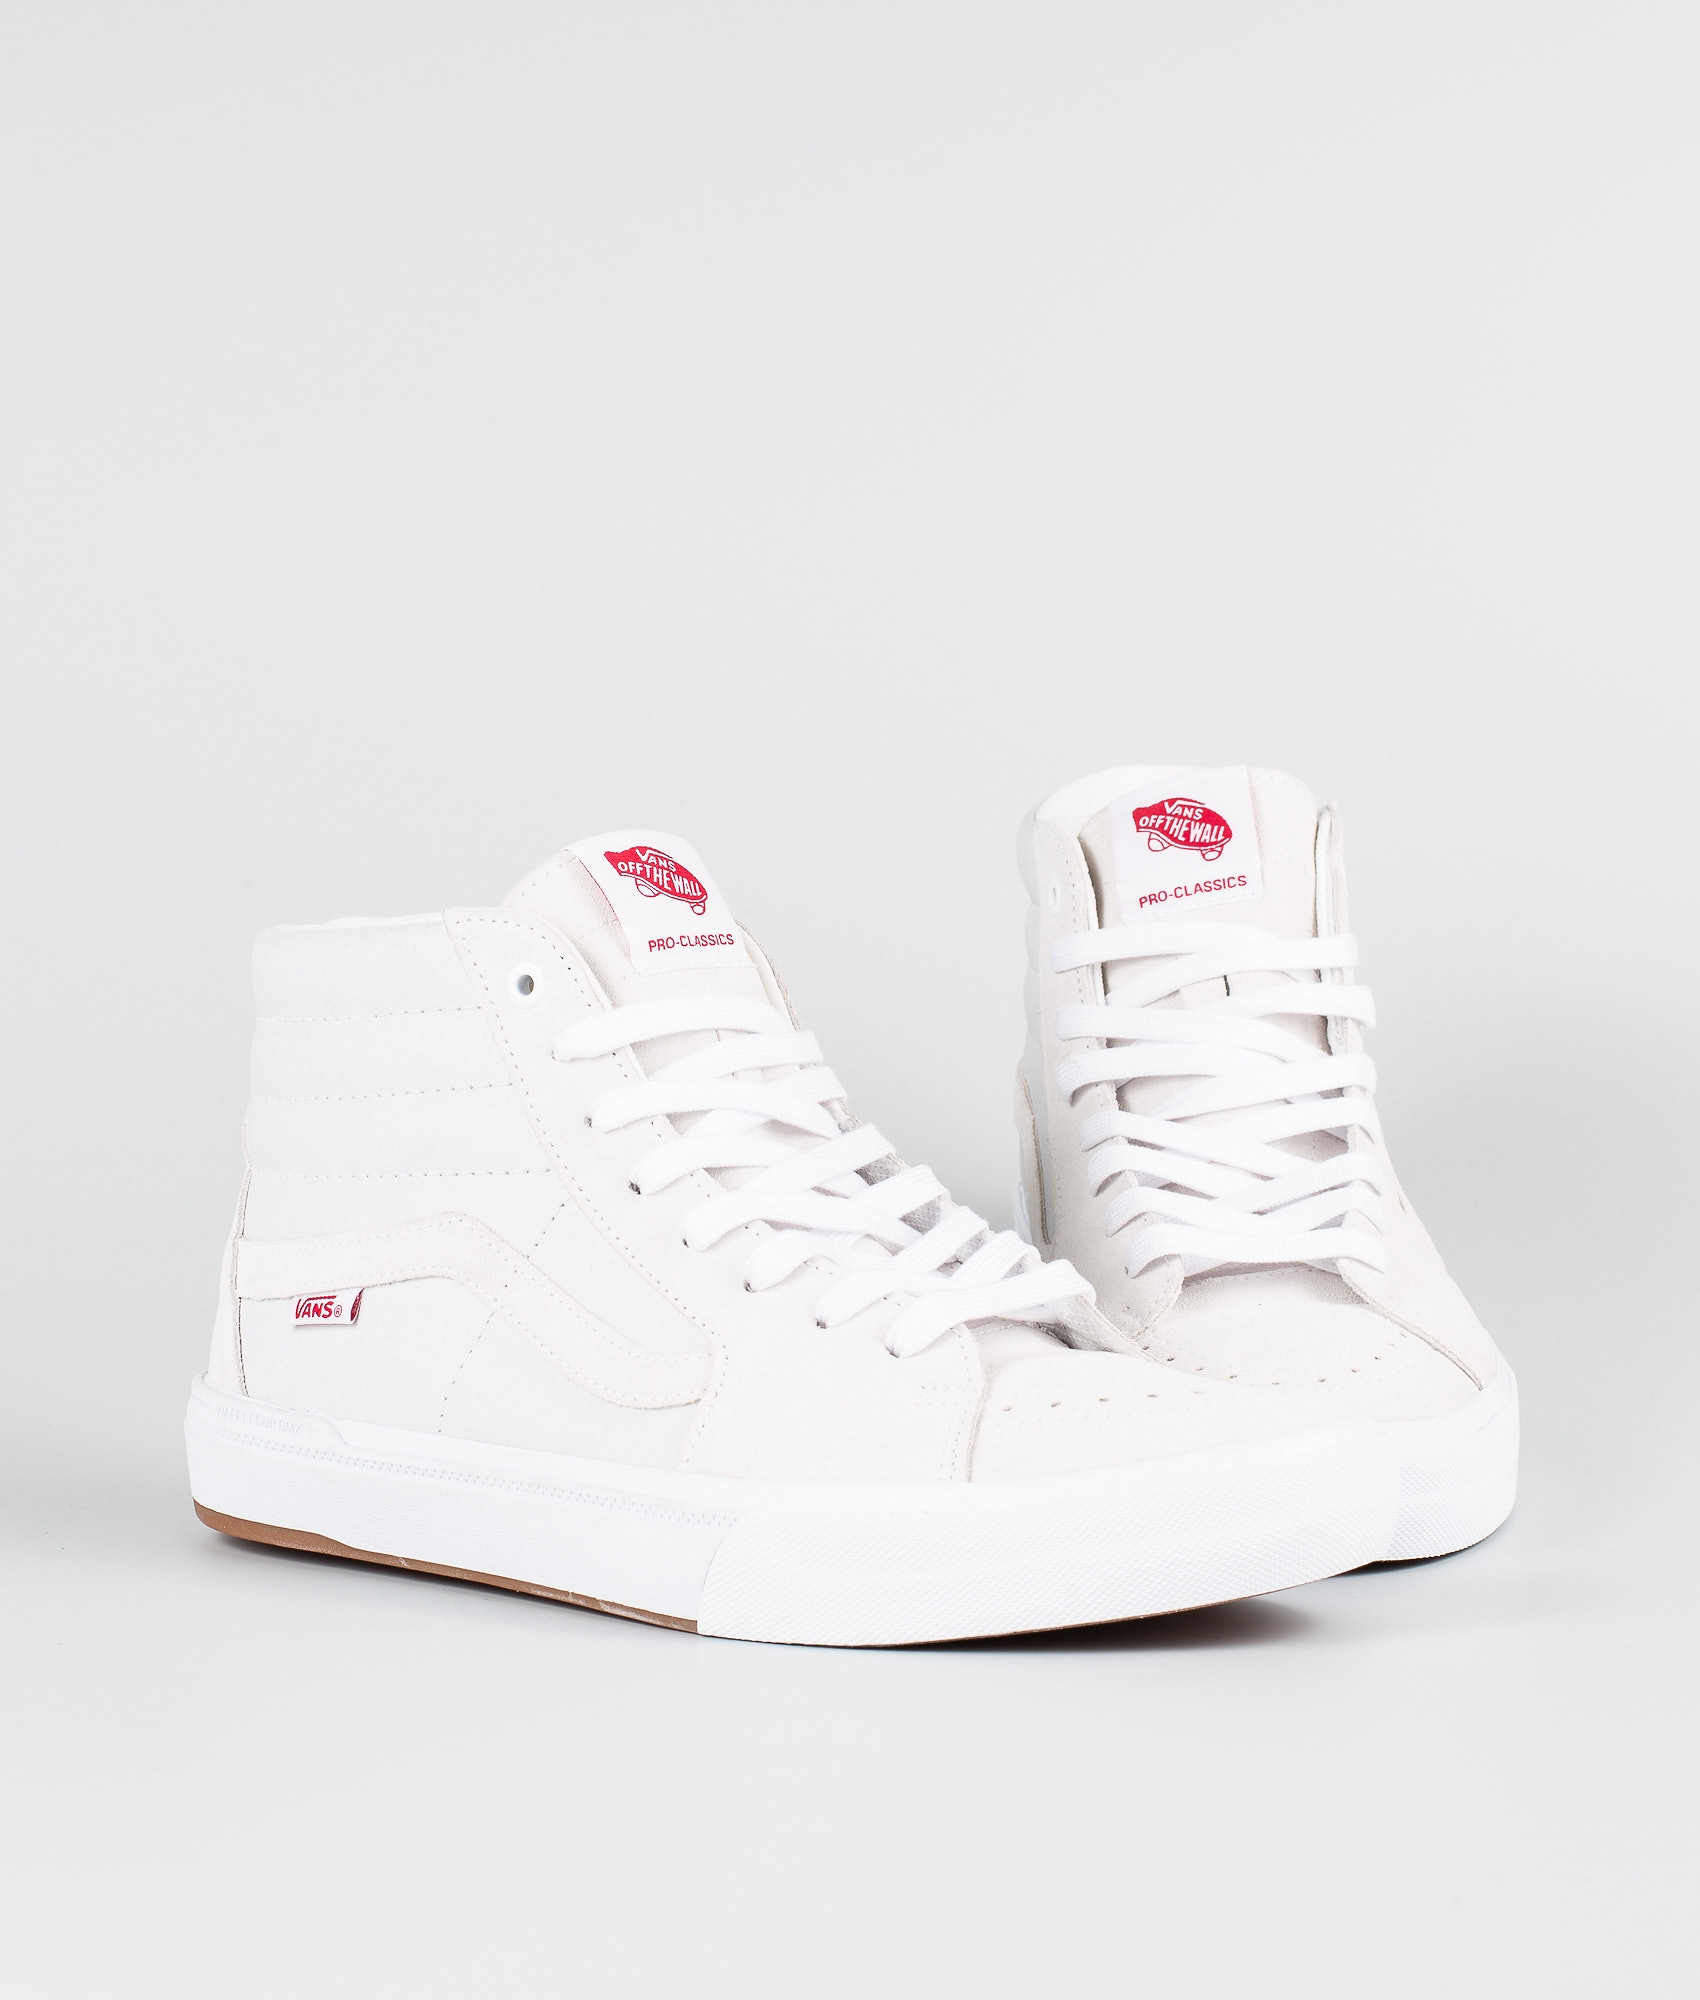 21dcc0e99f Vans Sk8-Hi Pro Bmx Shoes (Scotty Cranmer) White - Ridestore.com